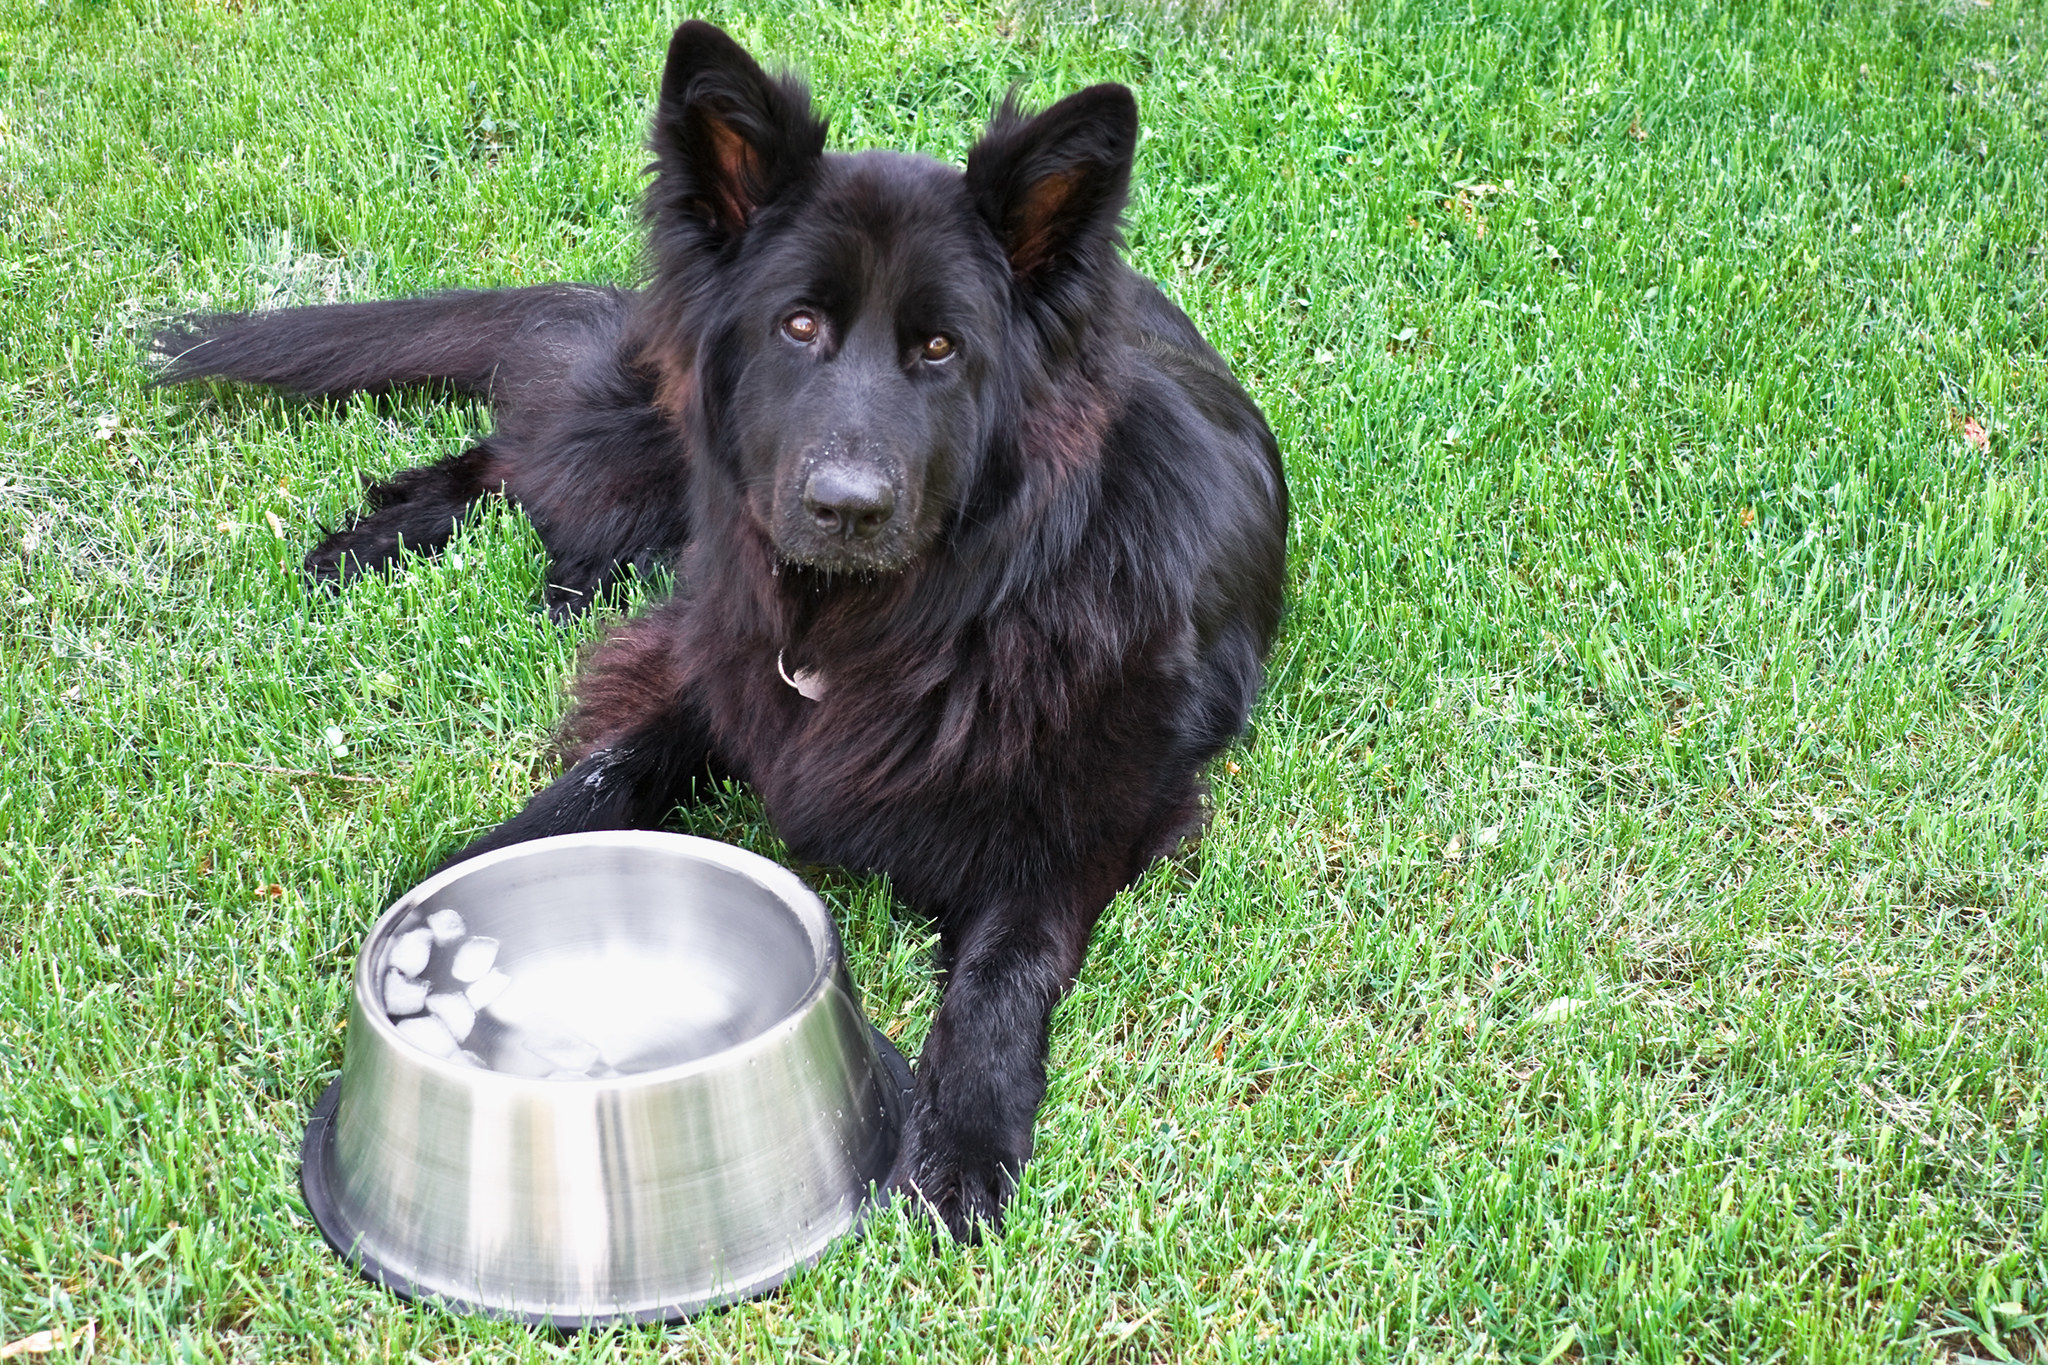 A dish full of fresh, cold water with partially melted ice cubes in front of a purebred long-haired German shepherd dog.